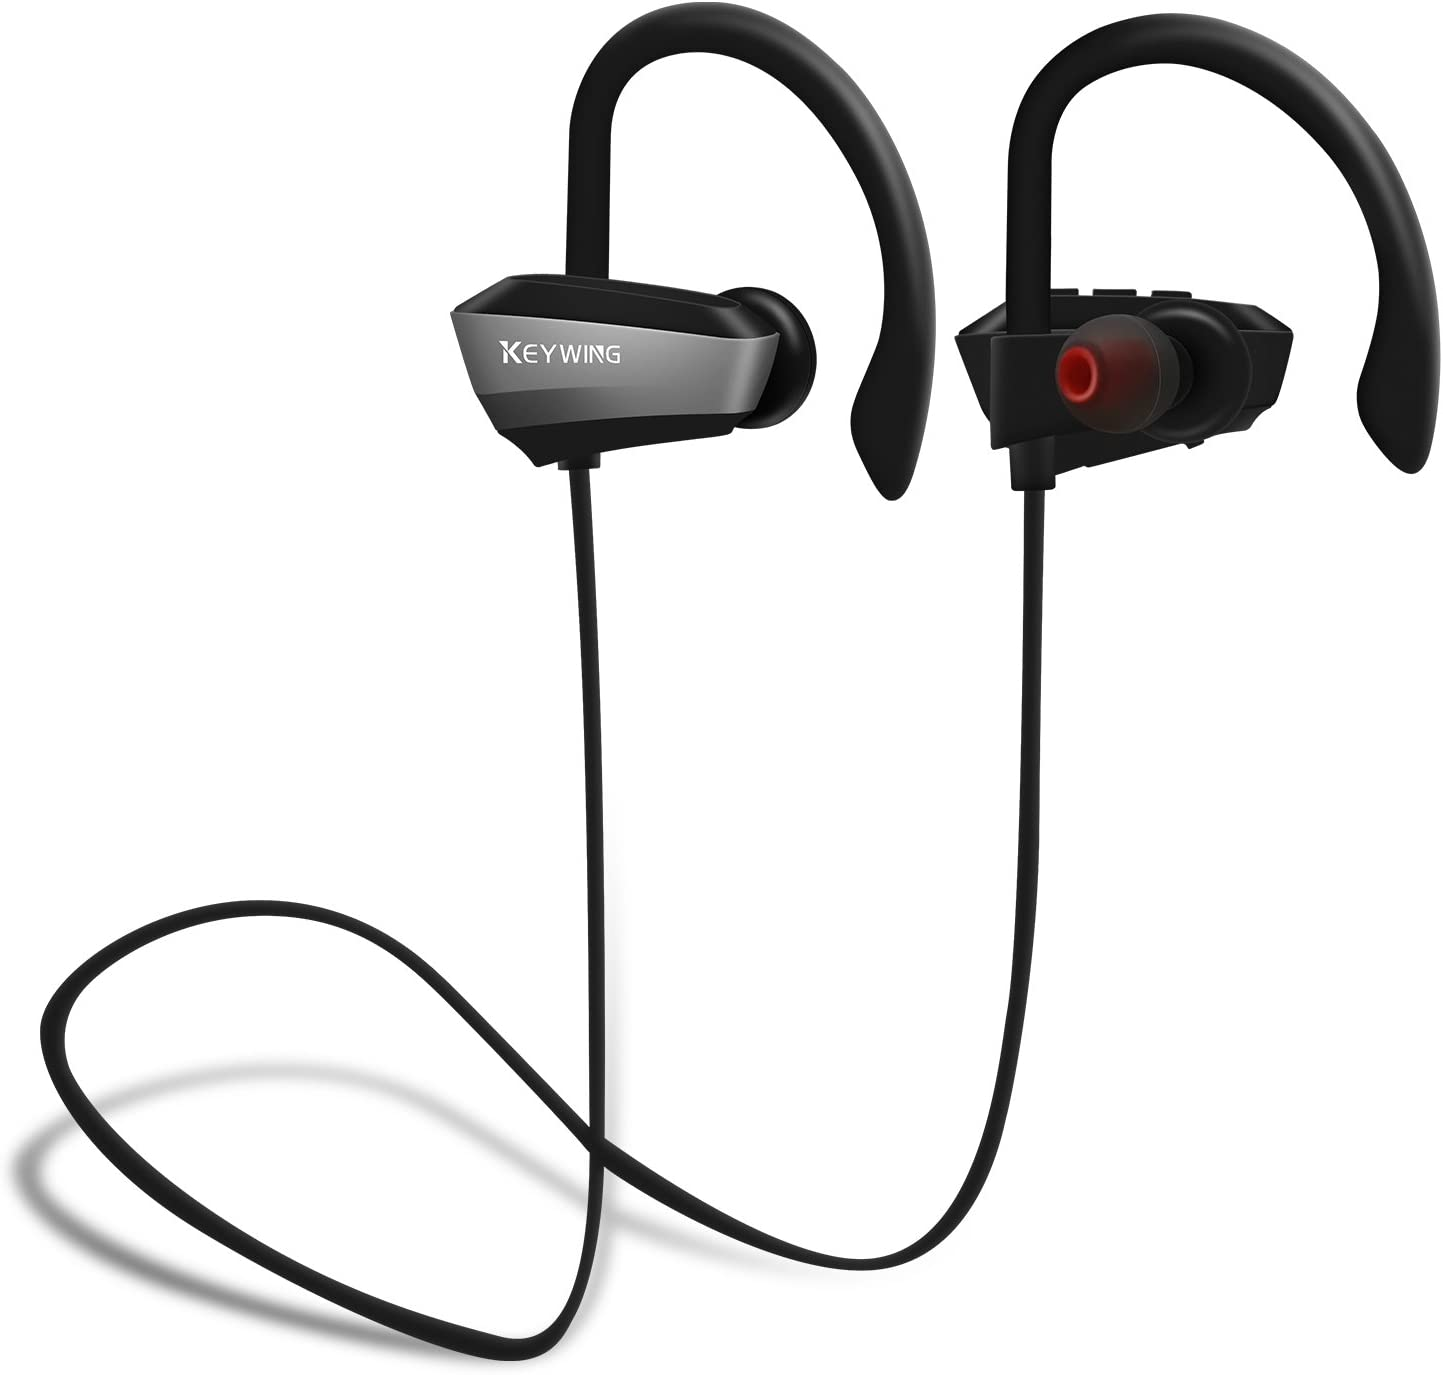 Sports Wireless Headphones KEYWING Bluetooth Headphones Sports Earphones with Microphone IPX7 Waterproof HD Stereo Bluetooth Earbuds for Gym Running Workout 8 Hours Battery Noise Cancelling Headsets